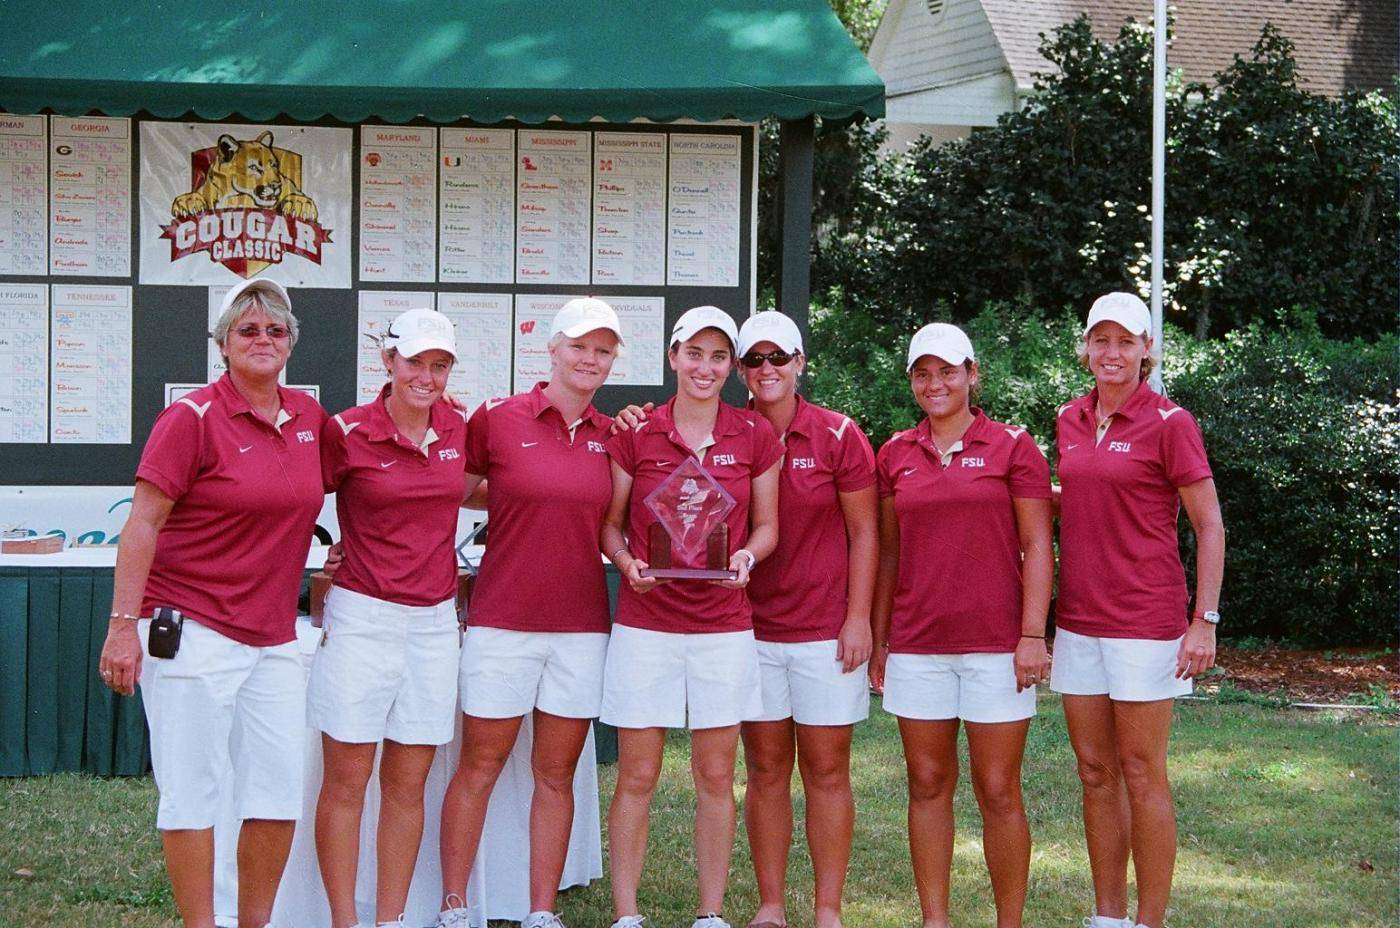 Women's Golf at the 2009 Cougar Classic.